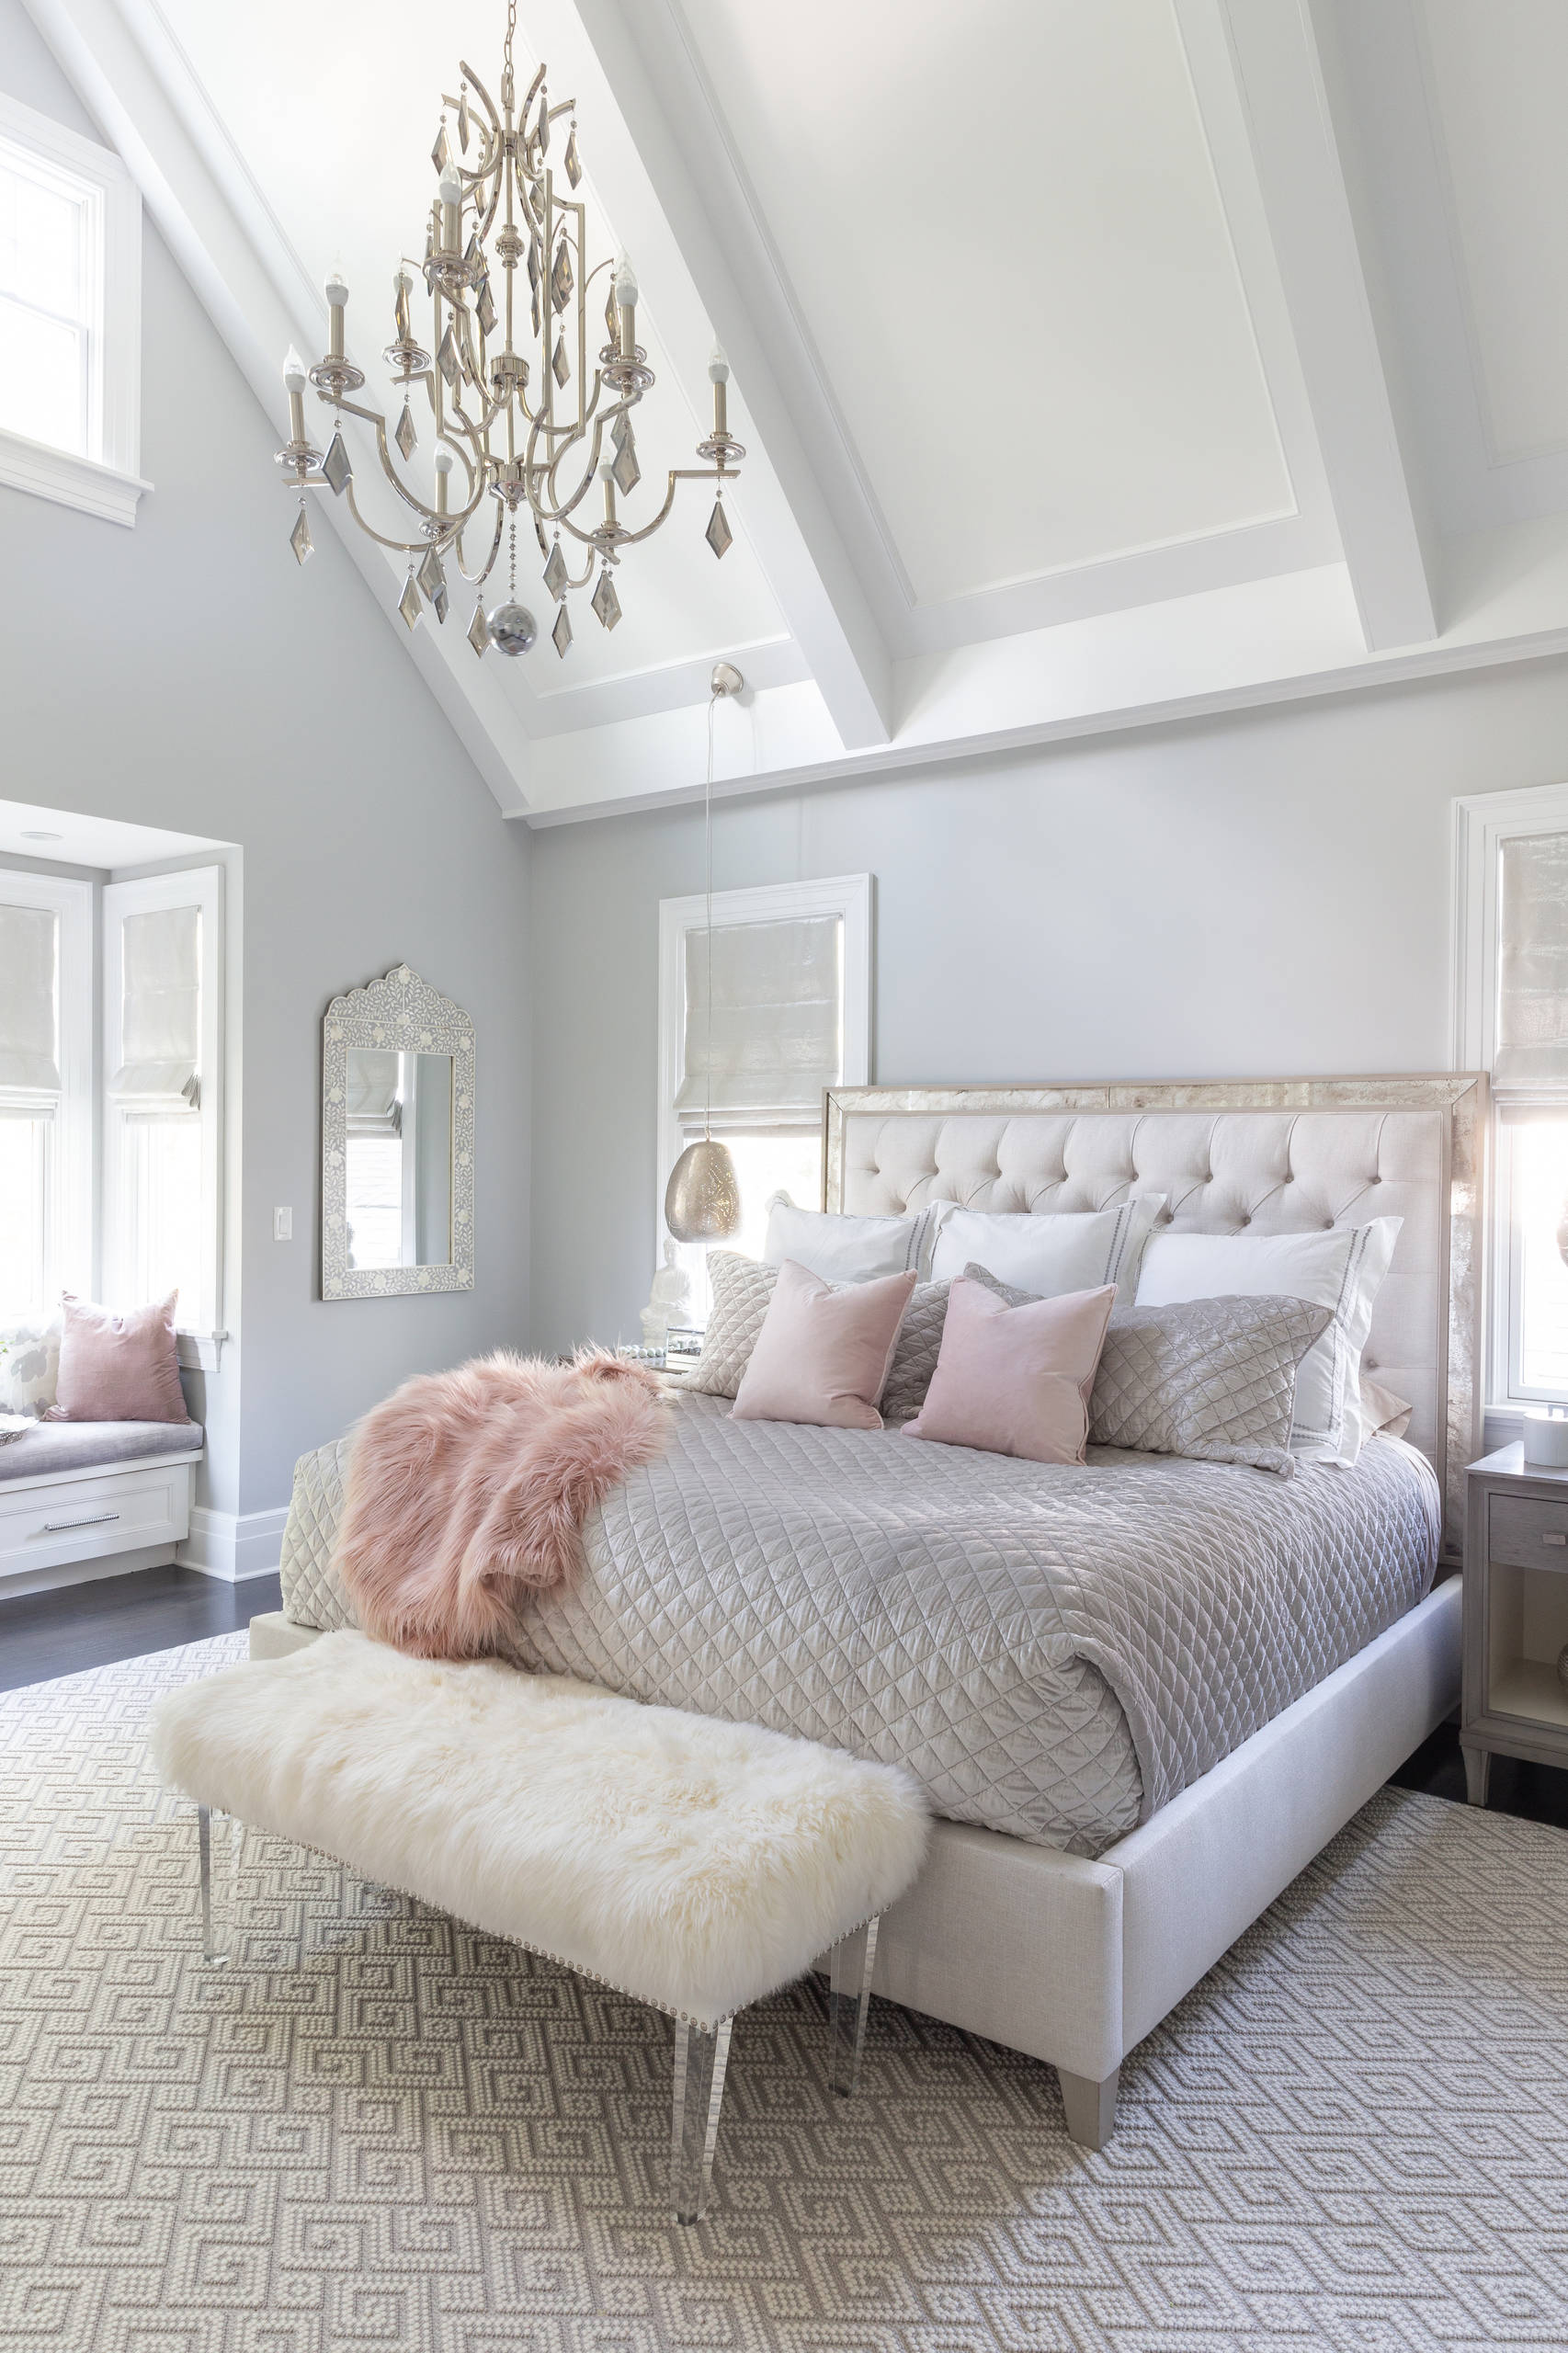 18 Beautiful Small Bedroom Pictures Ideas October 2020 Houzz